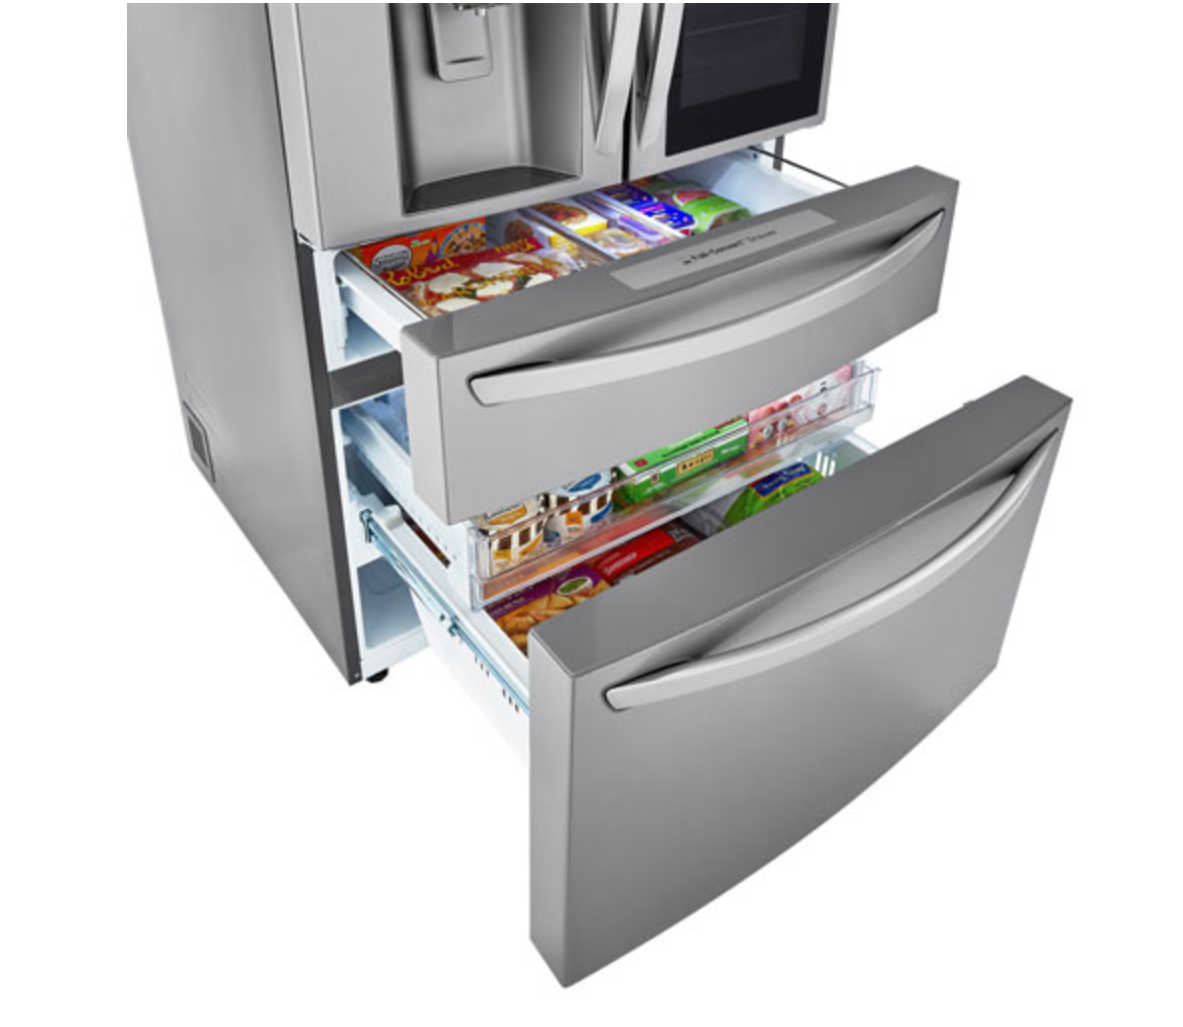 LG Bottom Mounted Freezer